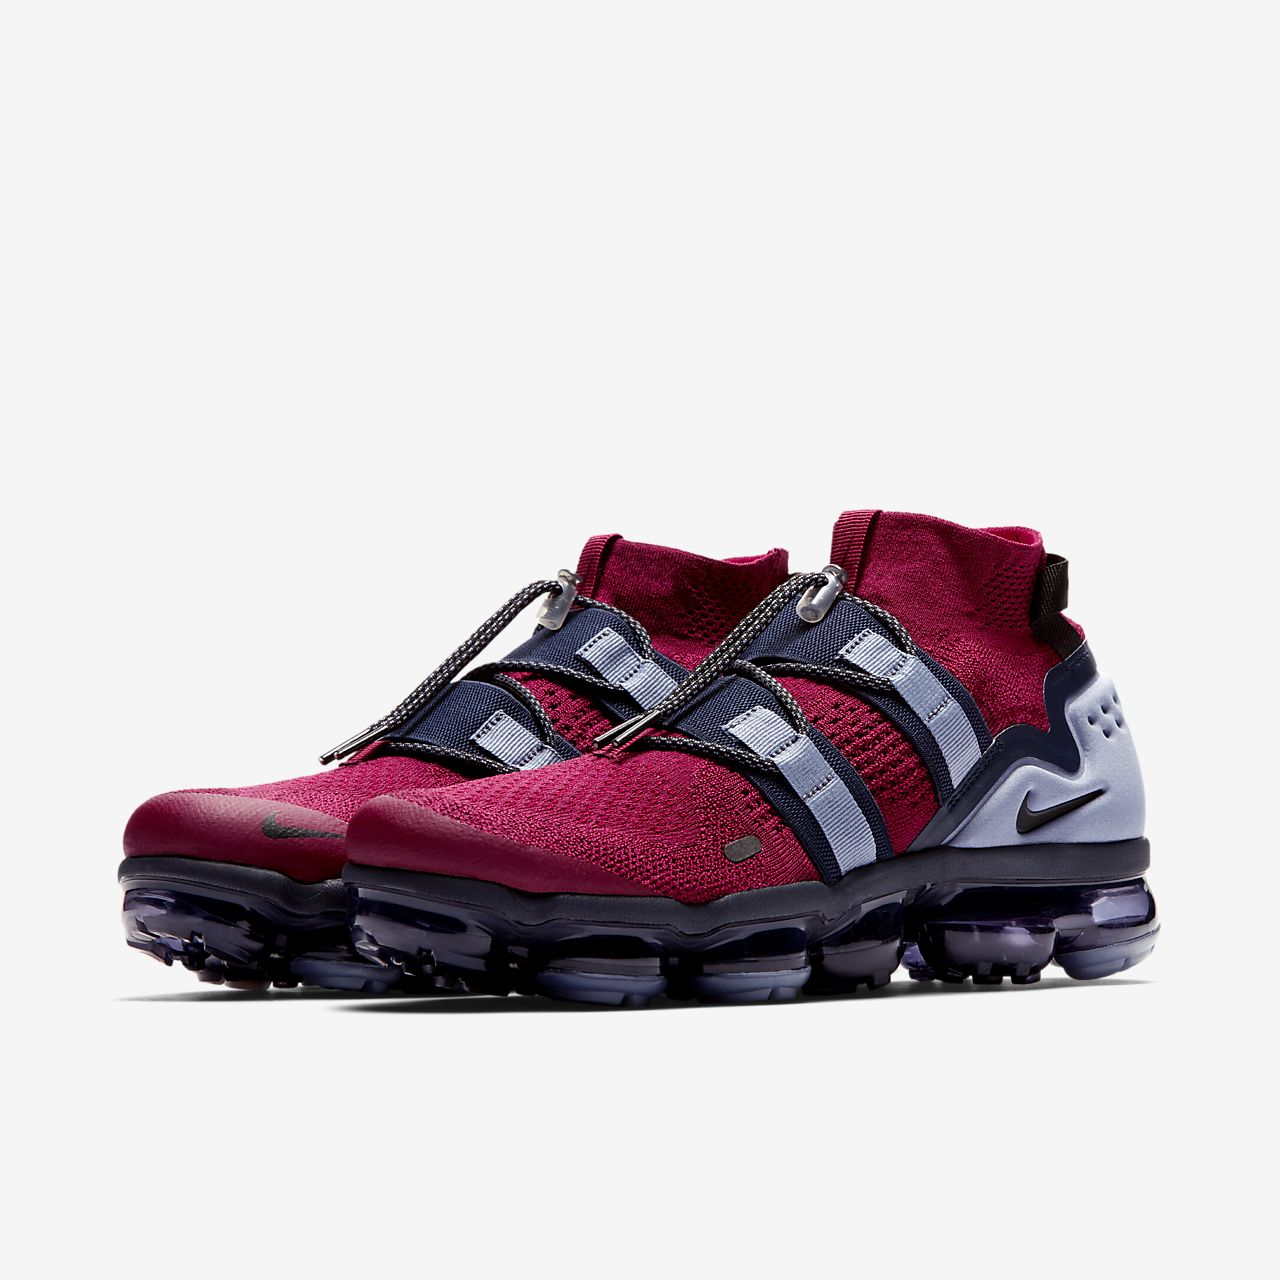 new concept 3ed3d ac87e ... Nike Air VaporMax Flyknit Utility Shoe